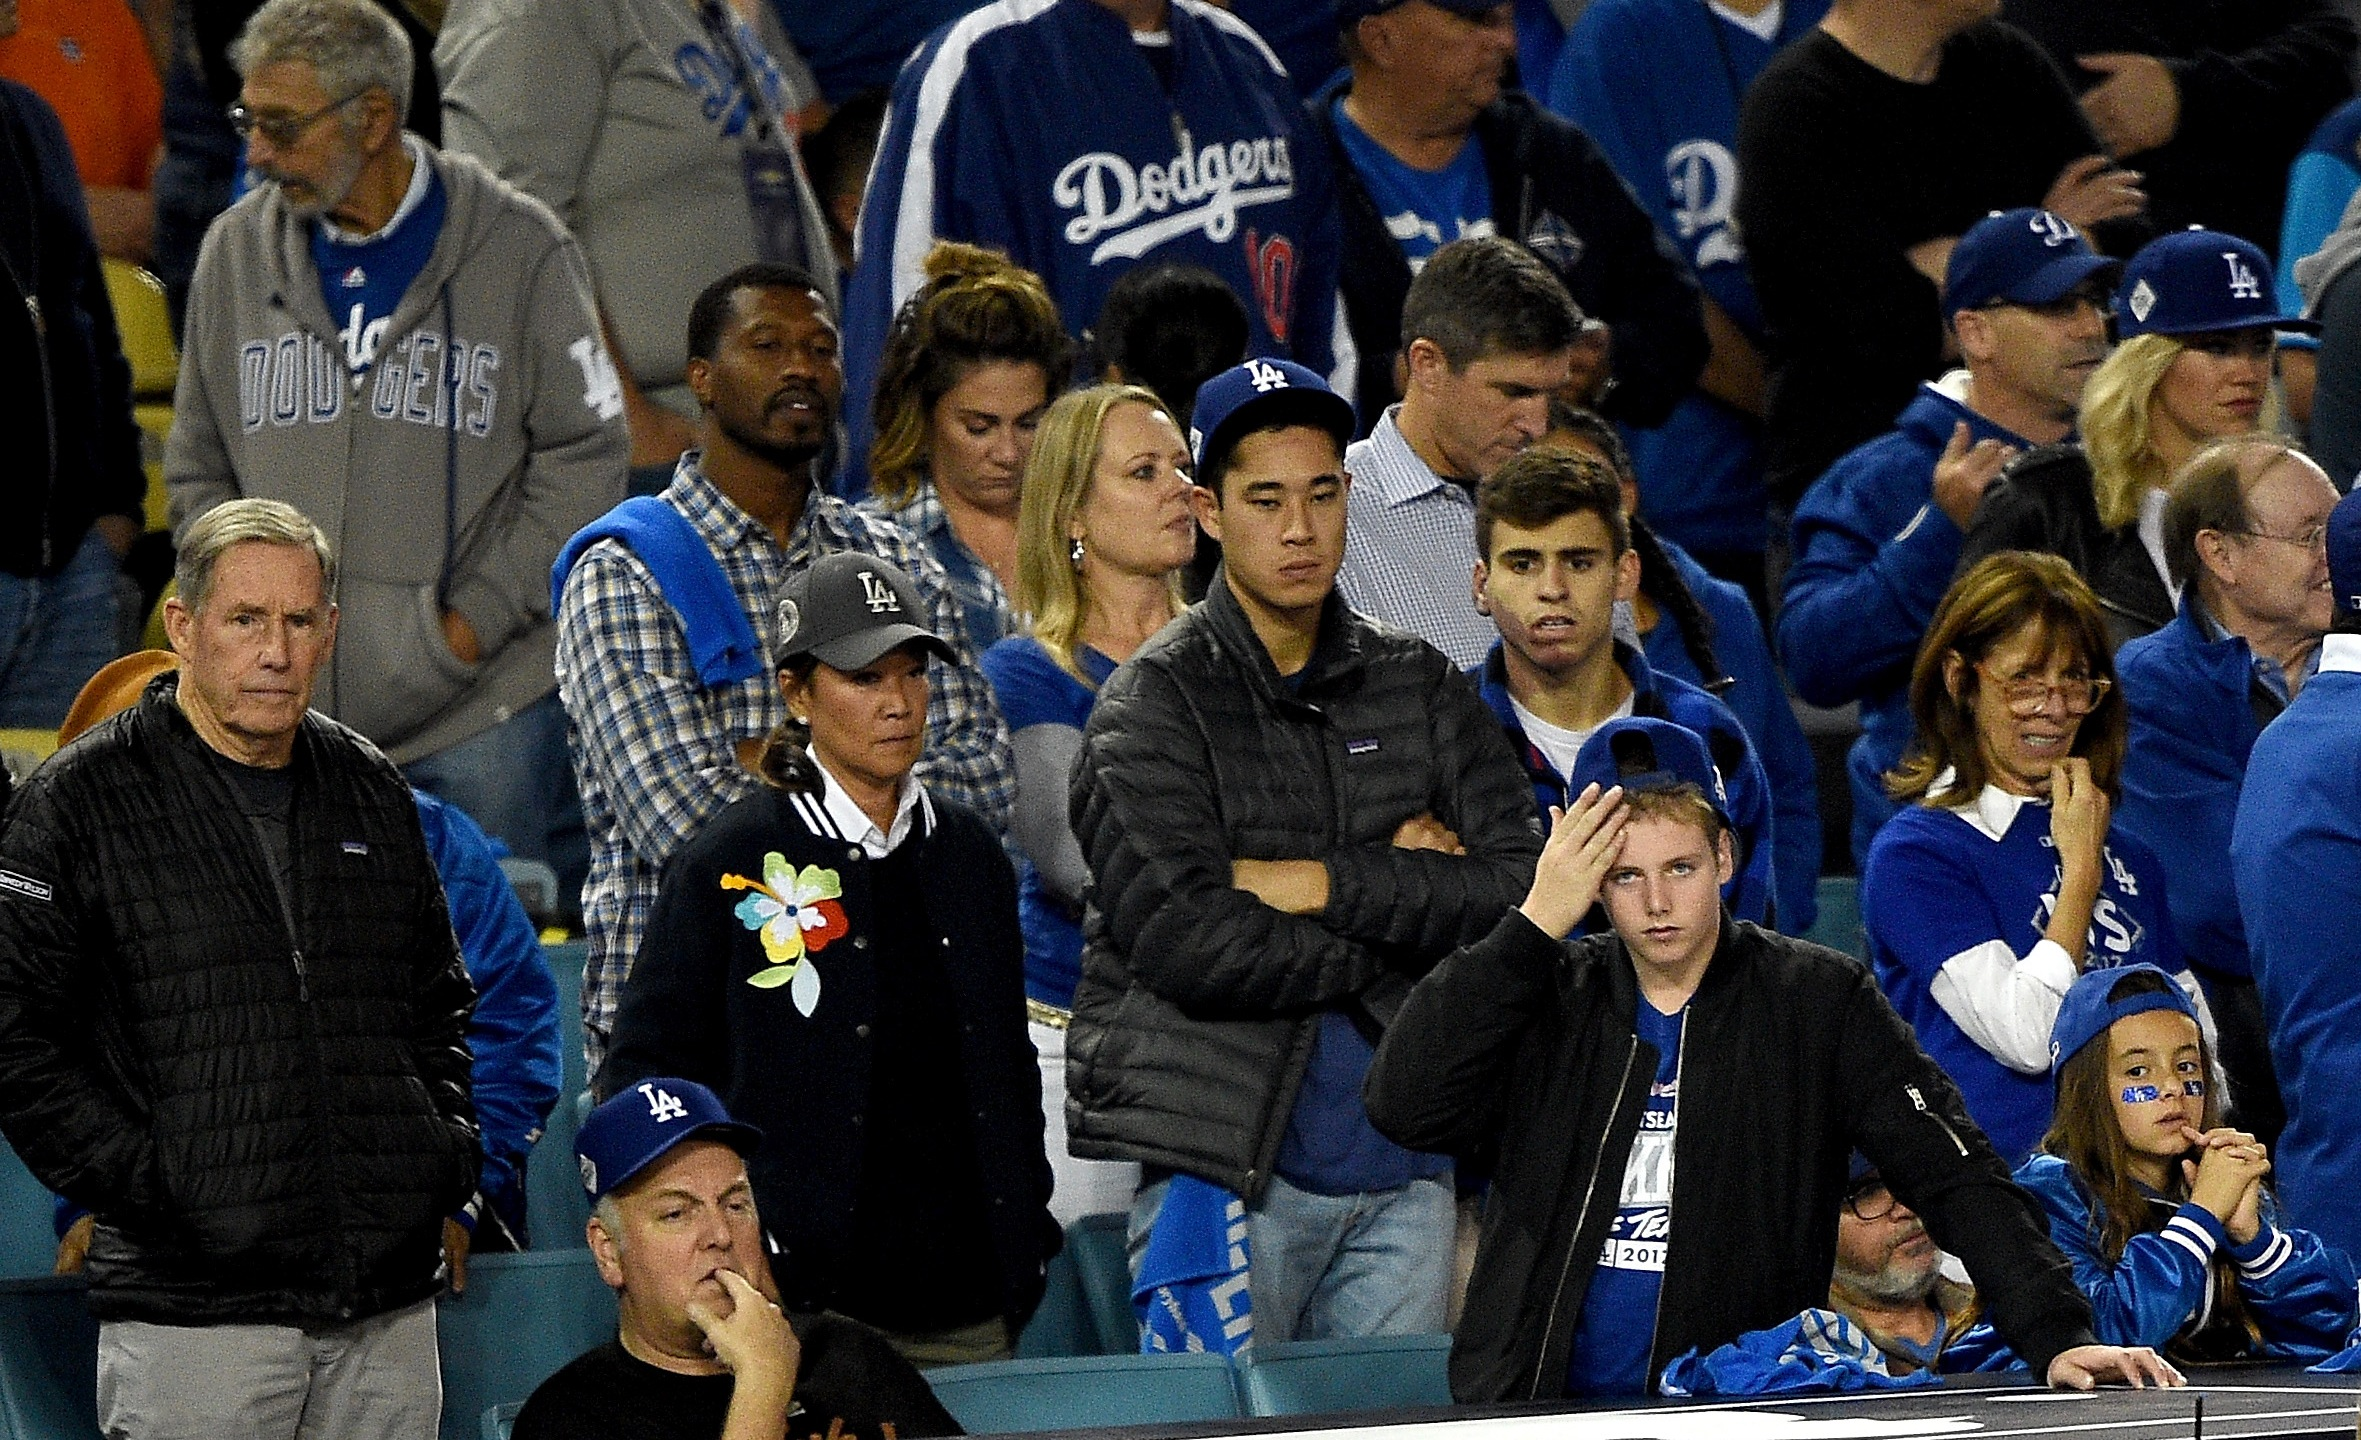 Los Angeles Dodgers fans react during Game 7 of the 2017 World Series between the Houston Astros and the Los Angeles Dodgers at Dodger Stadium on Nov. 1, 2017. (Credit: Kevork Djansezian/Getty Images)